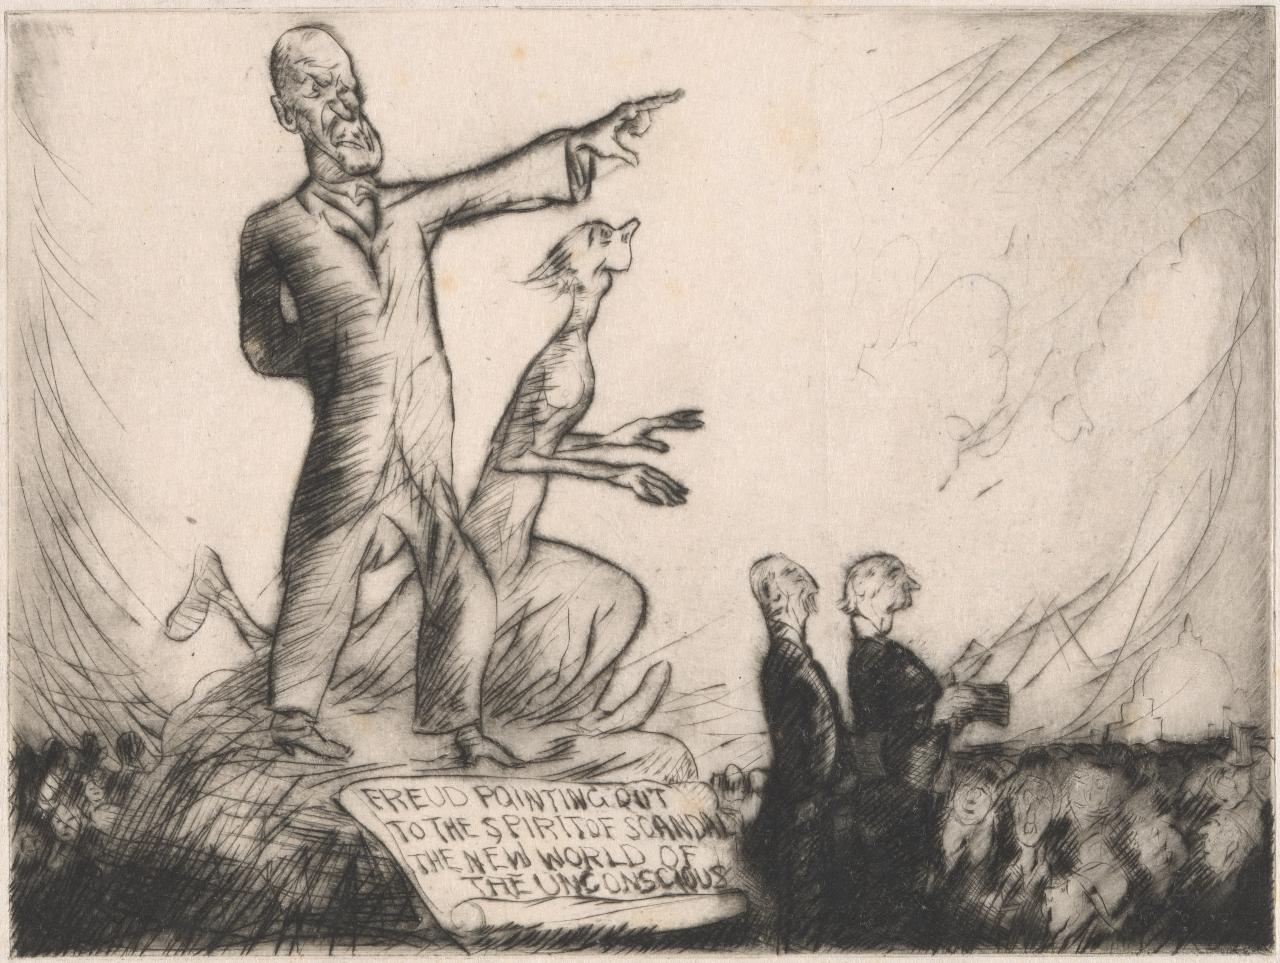 Our psychoanalysts: Freud pointing out to the spirit of scandal the new world of the unconscious